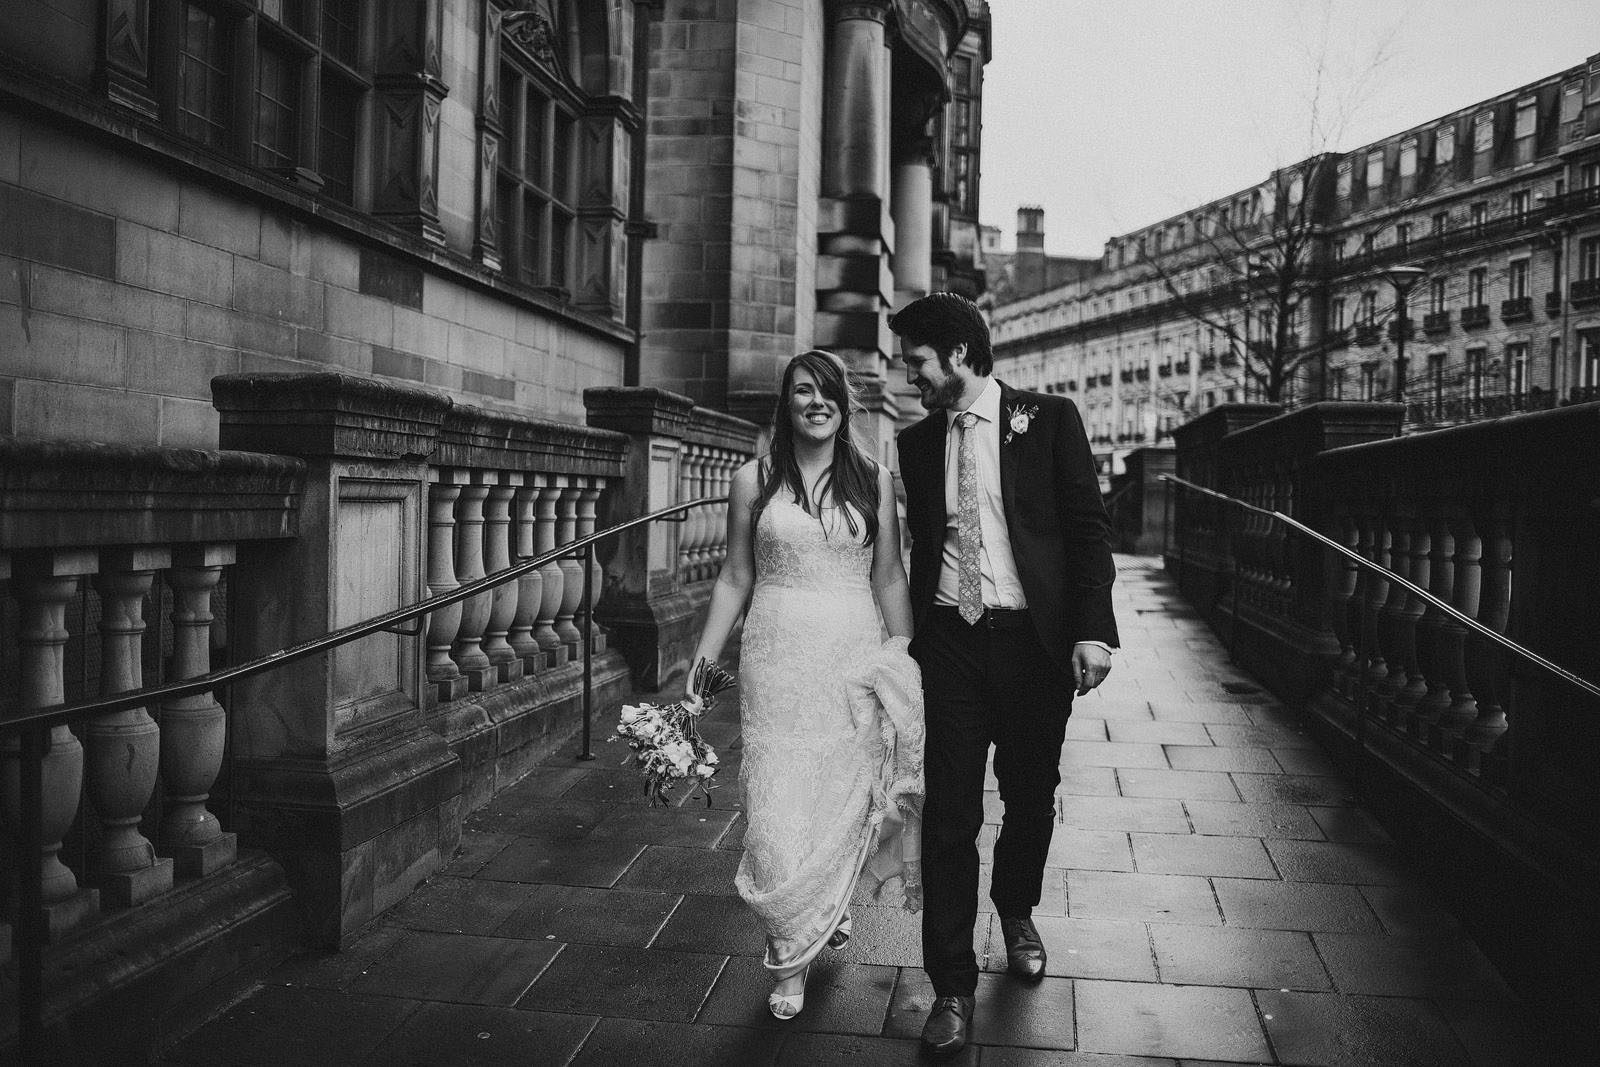 reportage wedding photographer Sheffield